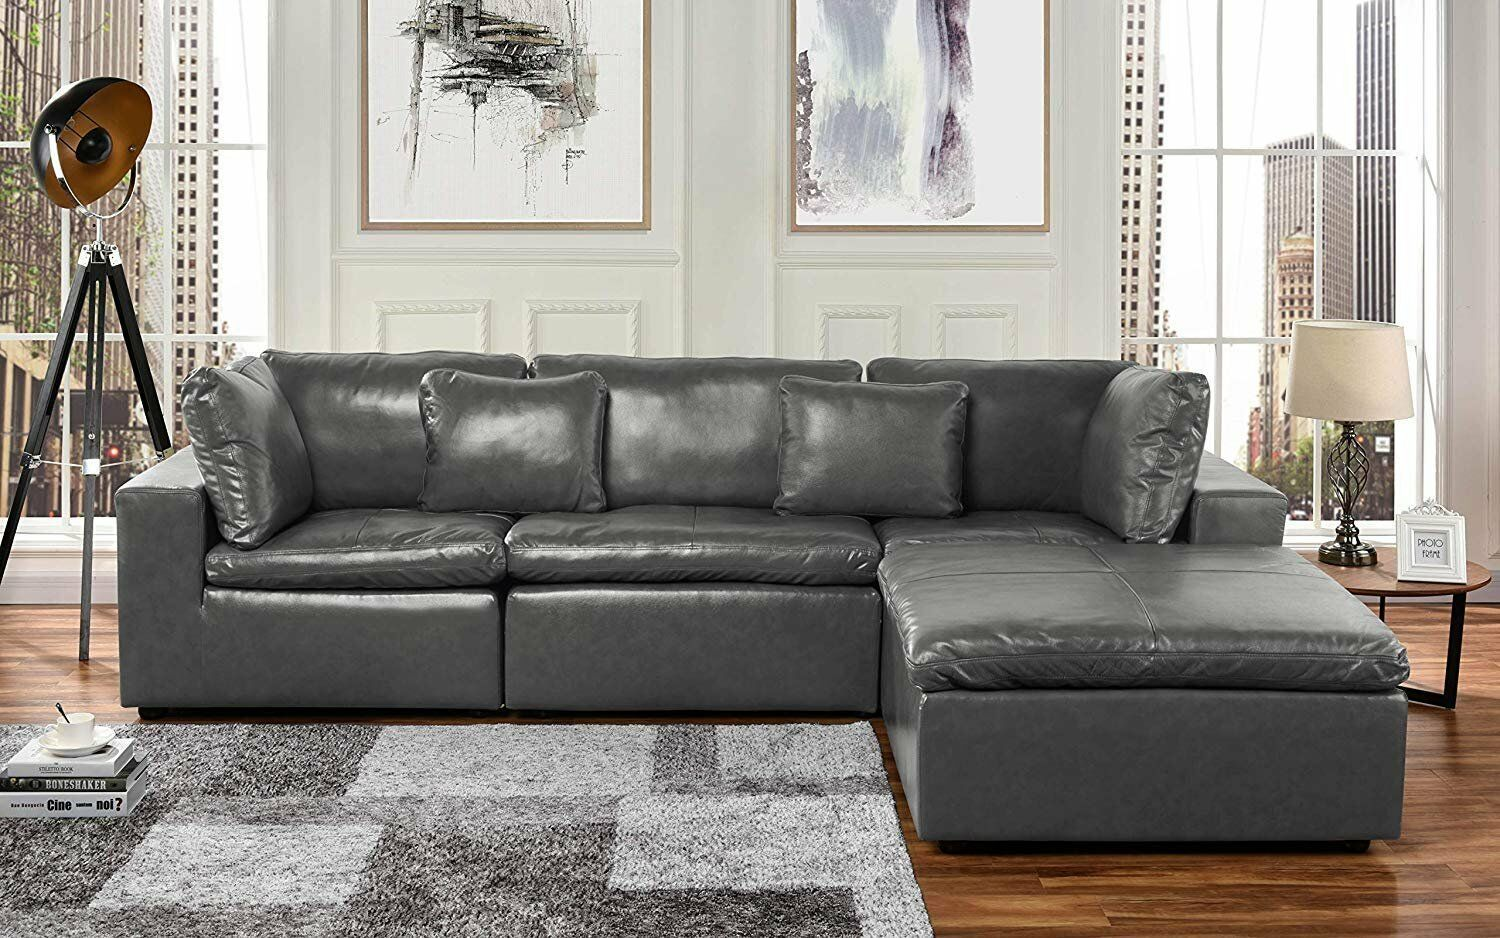 Leather Lounge Sectional Sofa L Shape Couch with Wide ...